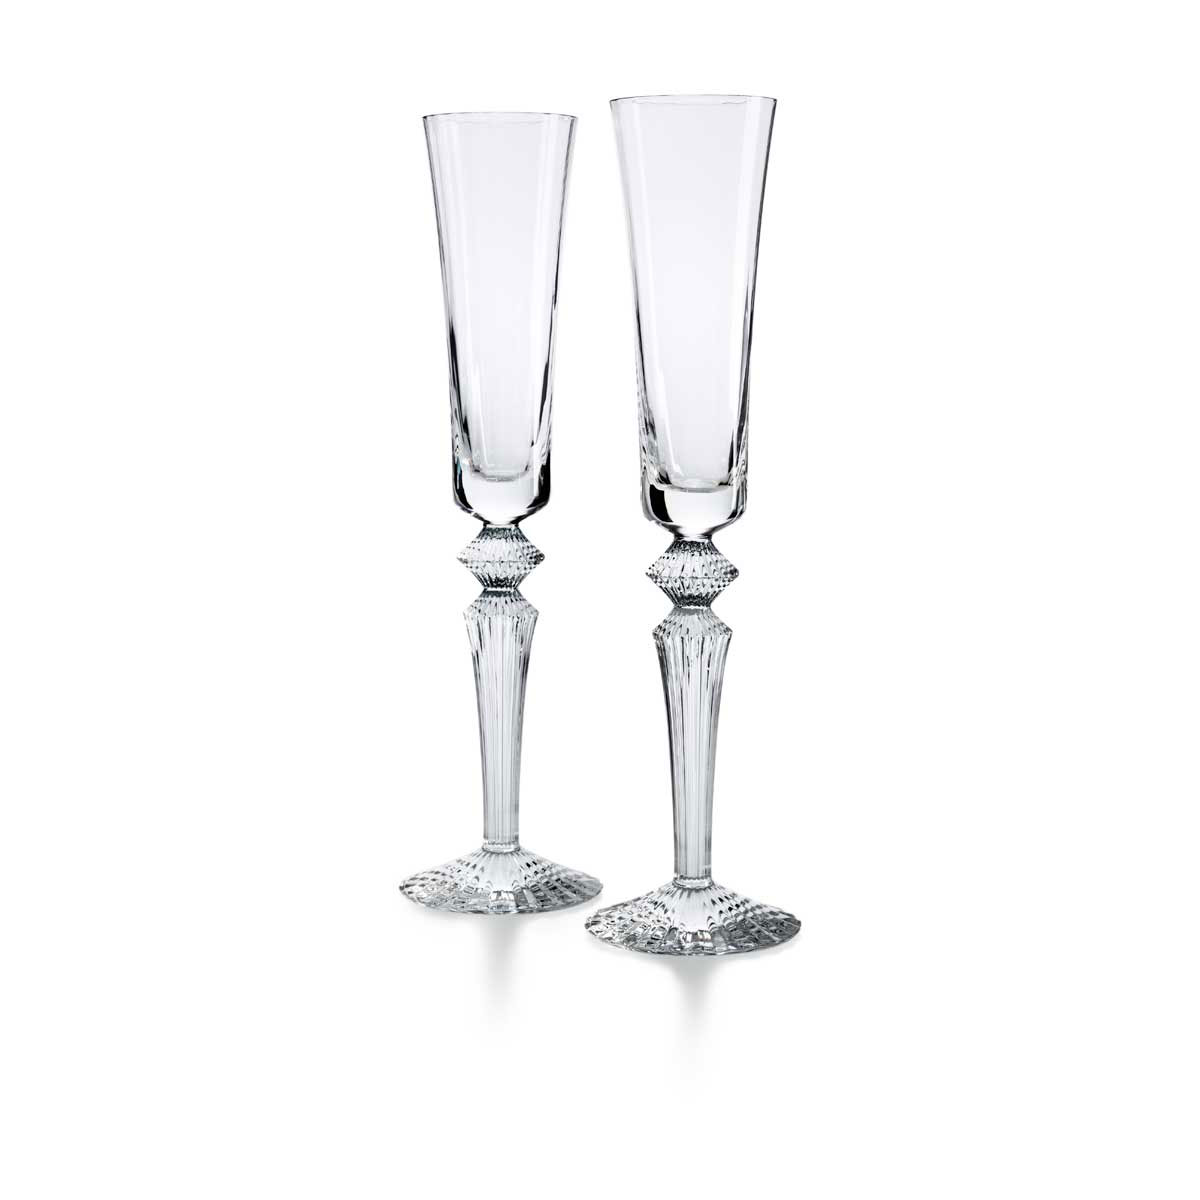 Baccarat Crystal, Mille Nuits Flutissimo Flutes, Clear, Pair